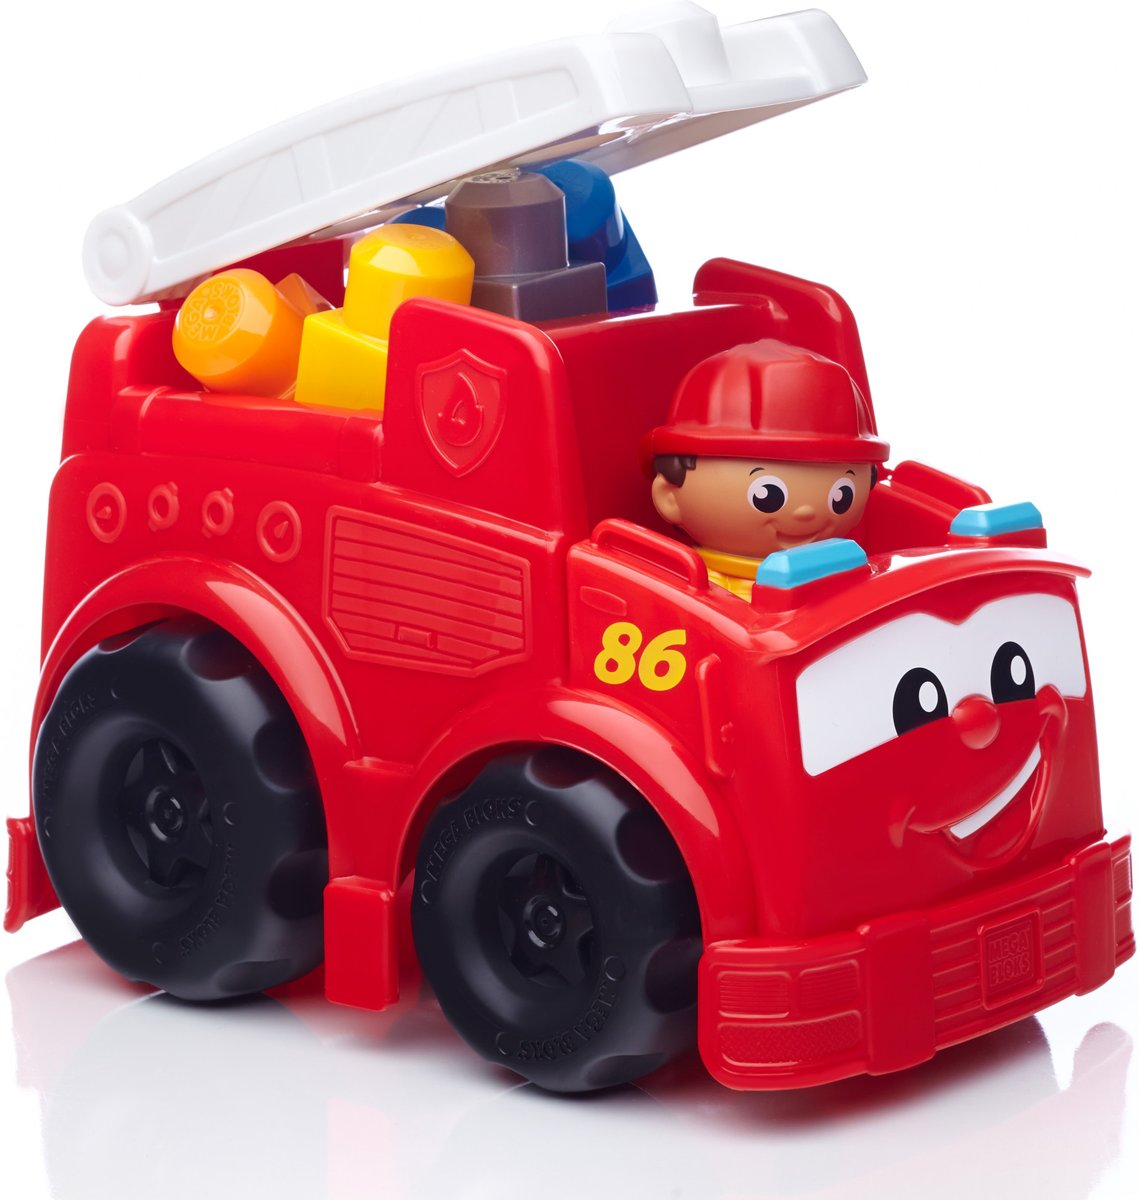 Mega Bloks - First Builders Fire Truck